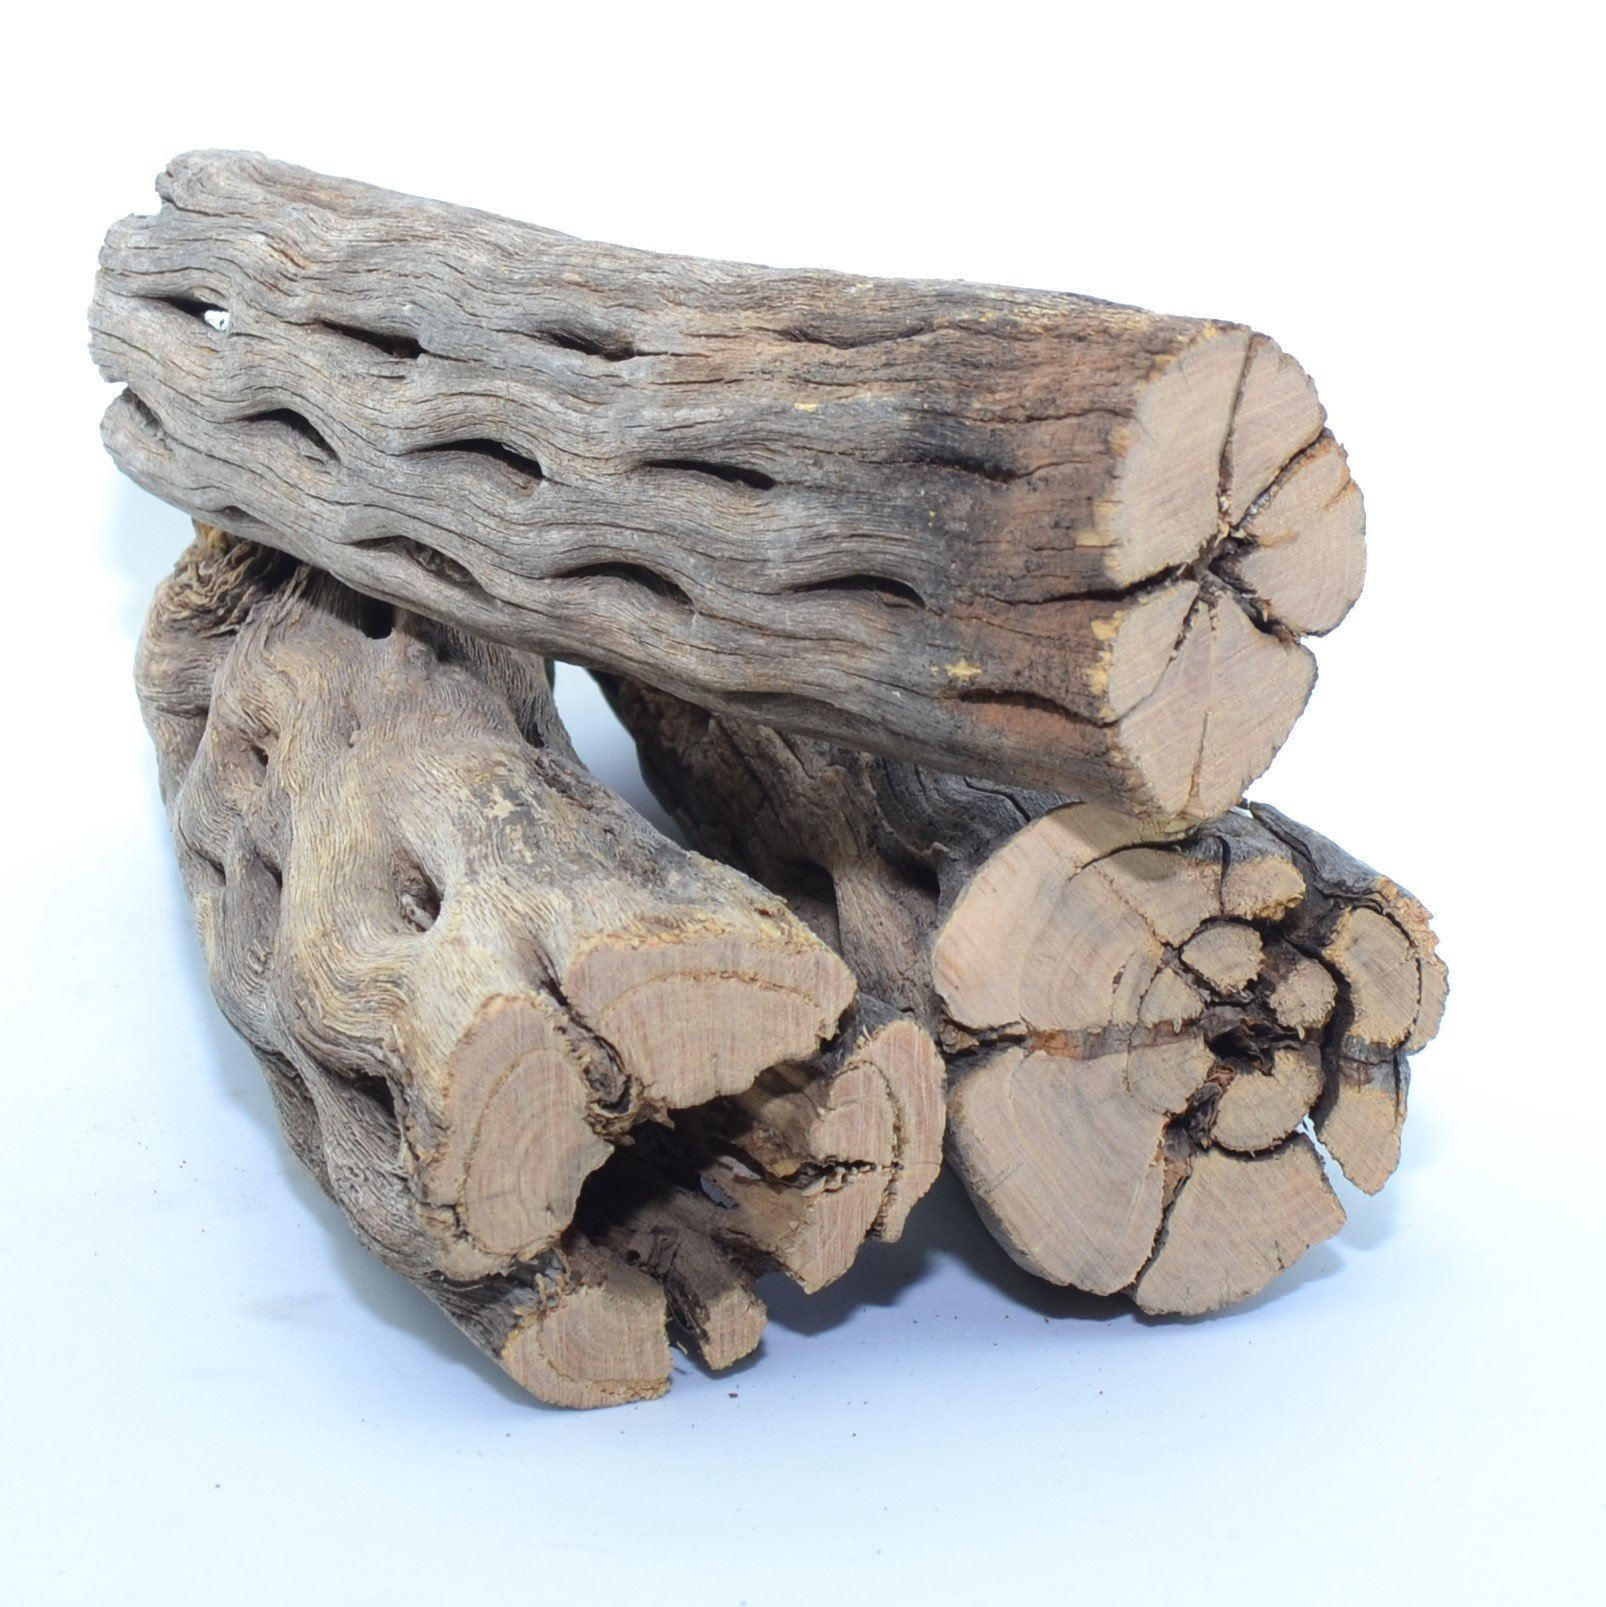 King Sized Natural Cholla Wood XL Large Thick Pieces| 3 Pieces of 5-6'' Long Natural Cholla Wood for Aquarium Decoration, Hermit Crabs, Shrimp by NilocG Aquatics